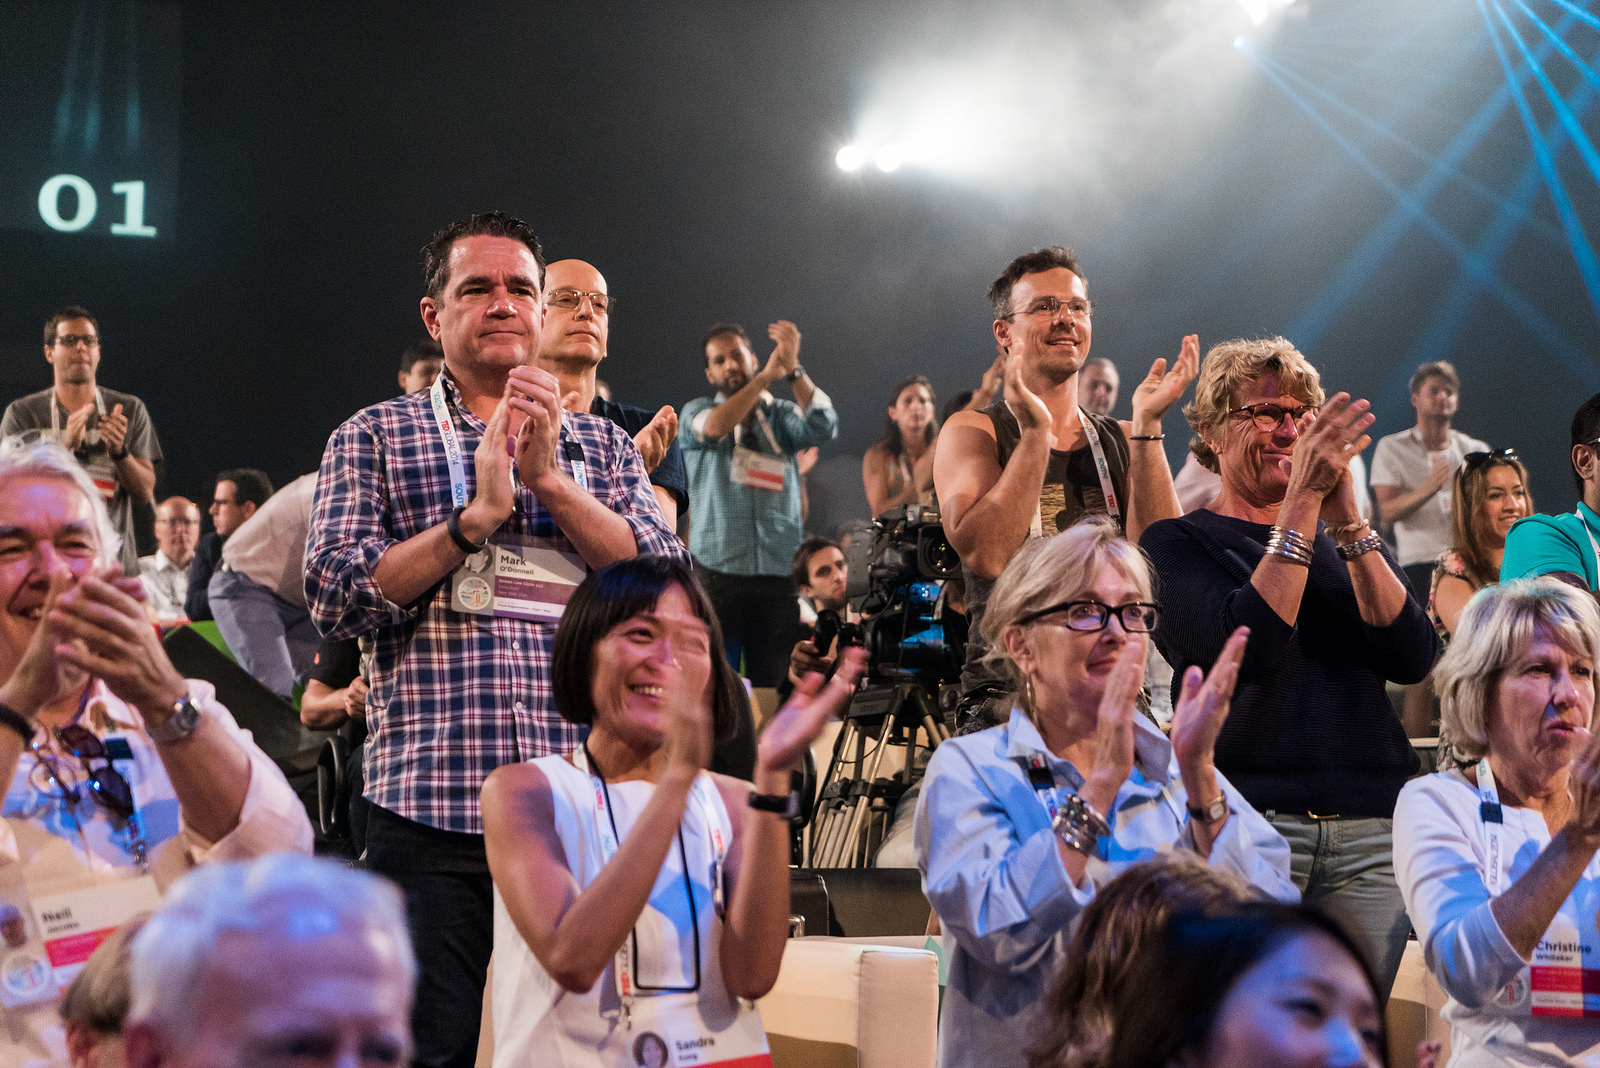 Audience members give a hearty standing ovation to speaker Oren Yakobovich. Photo: James Duncan Davidson